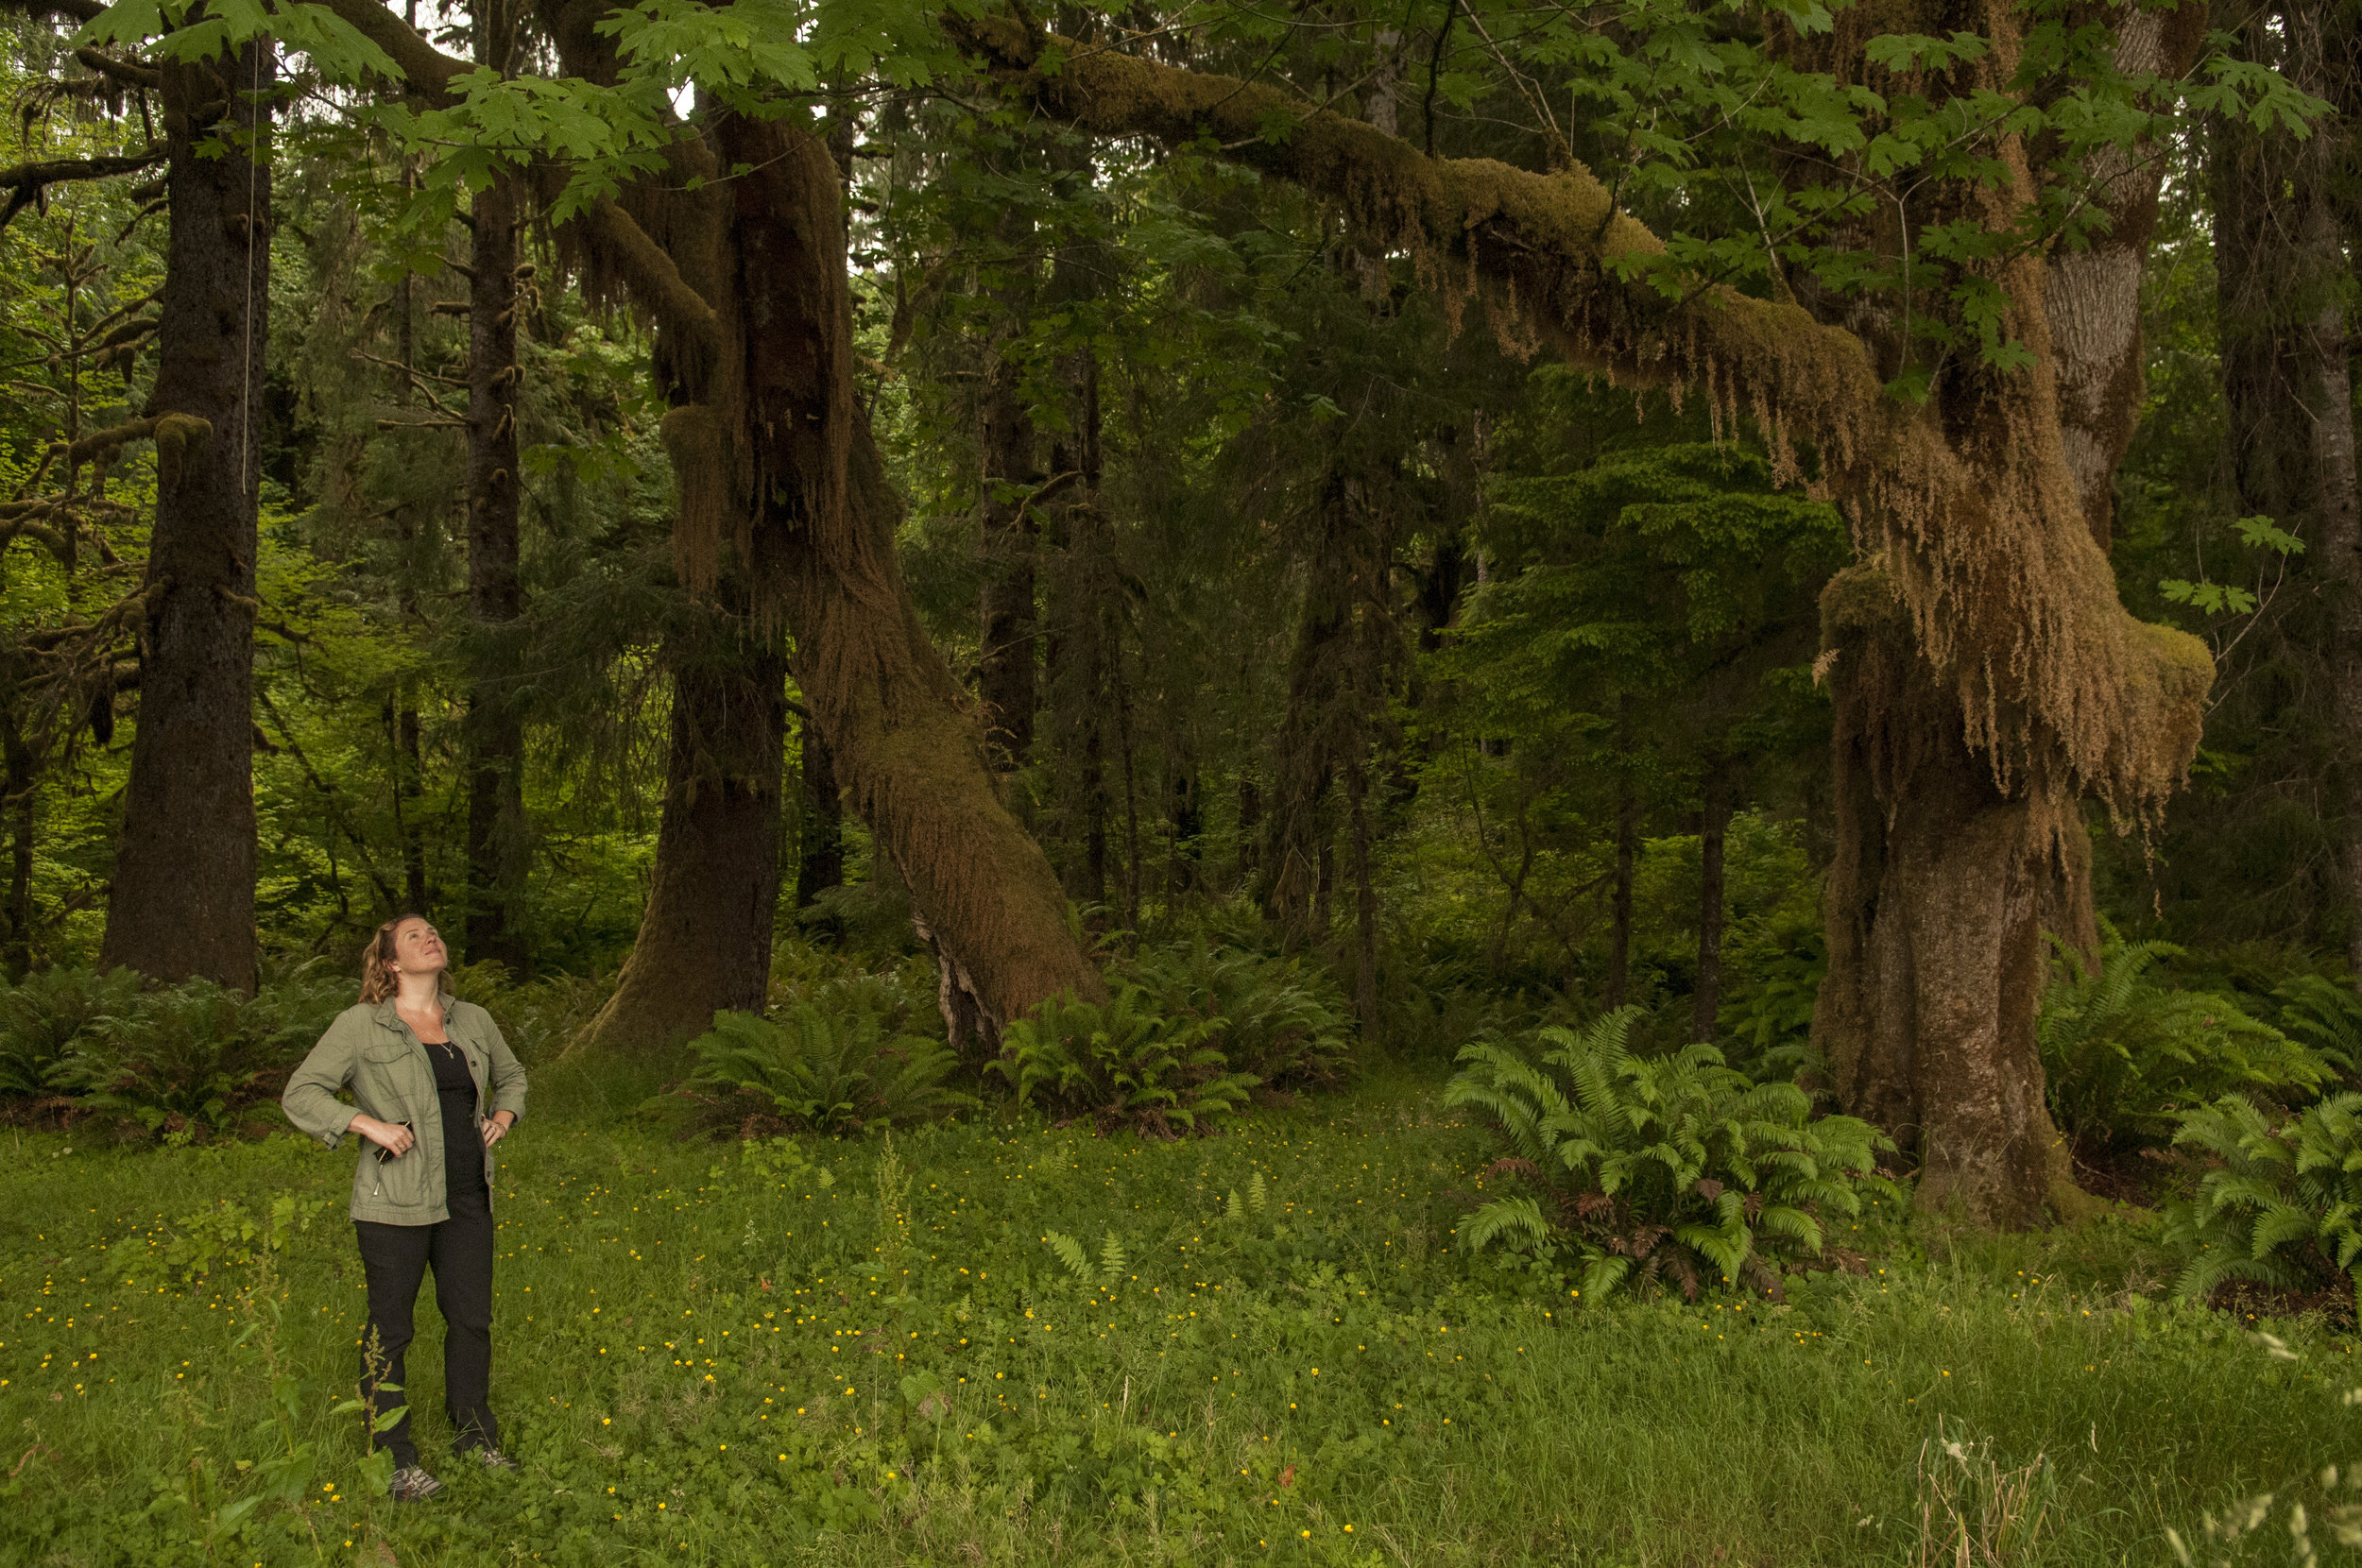 A Nature Conservancy staff member looks up at moss-covered trees near the Hoh River. Photo by Nikolaj Lasbo/TNC